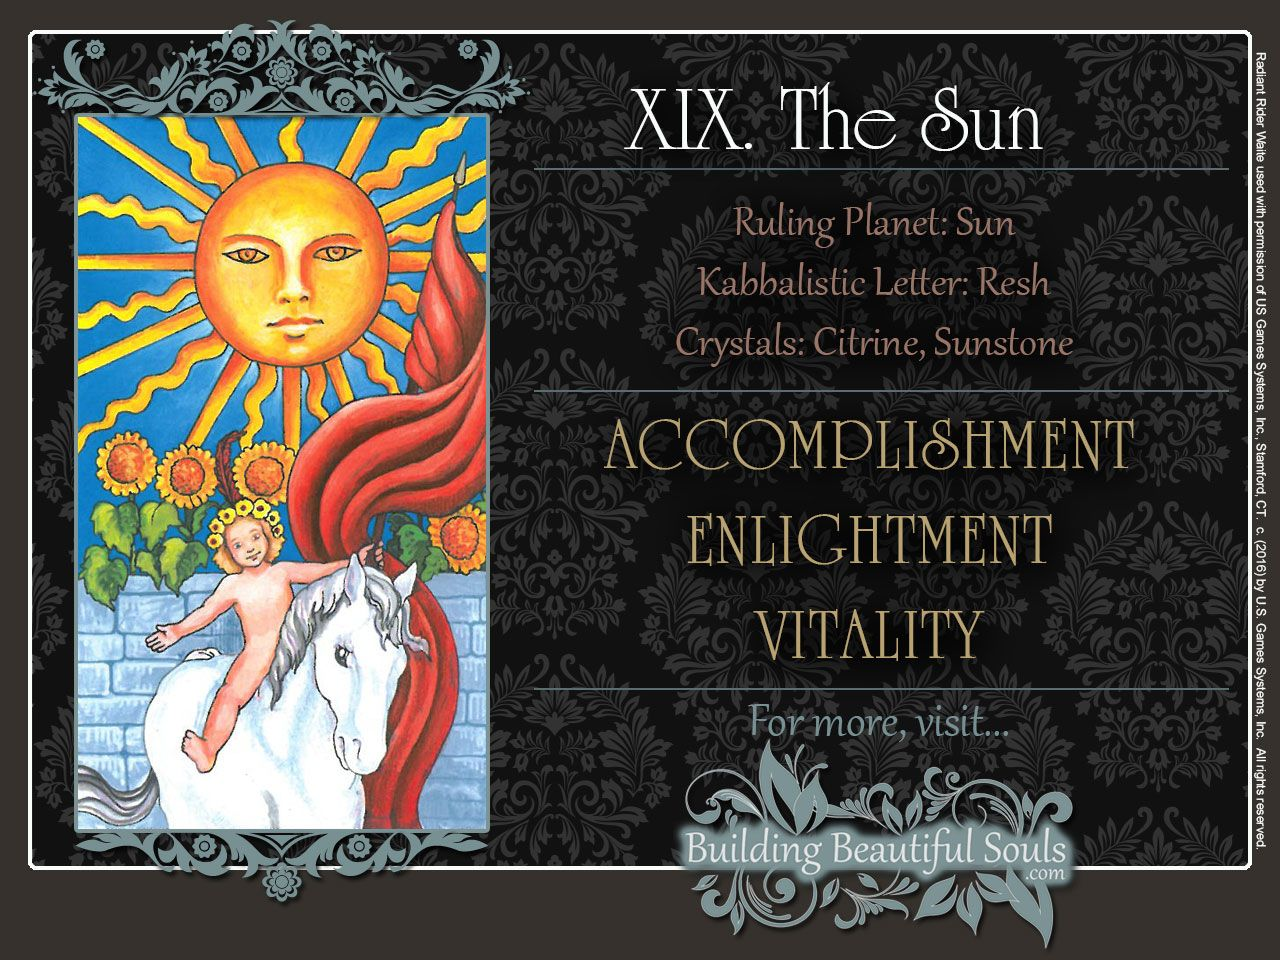 In-depth Tarot card meaning for The Sun - Upright & reversed Tarot Card Meanings included for better Tarot Reading. Learn more in our esoteric knowledge center!